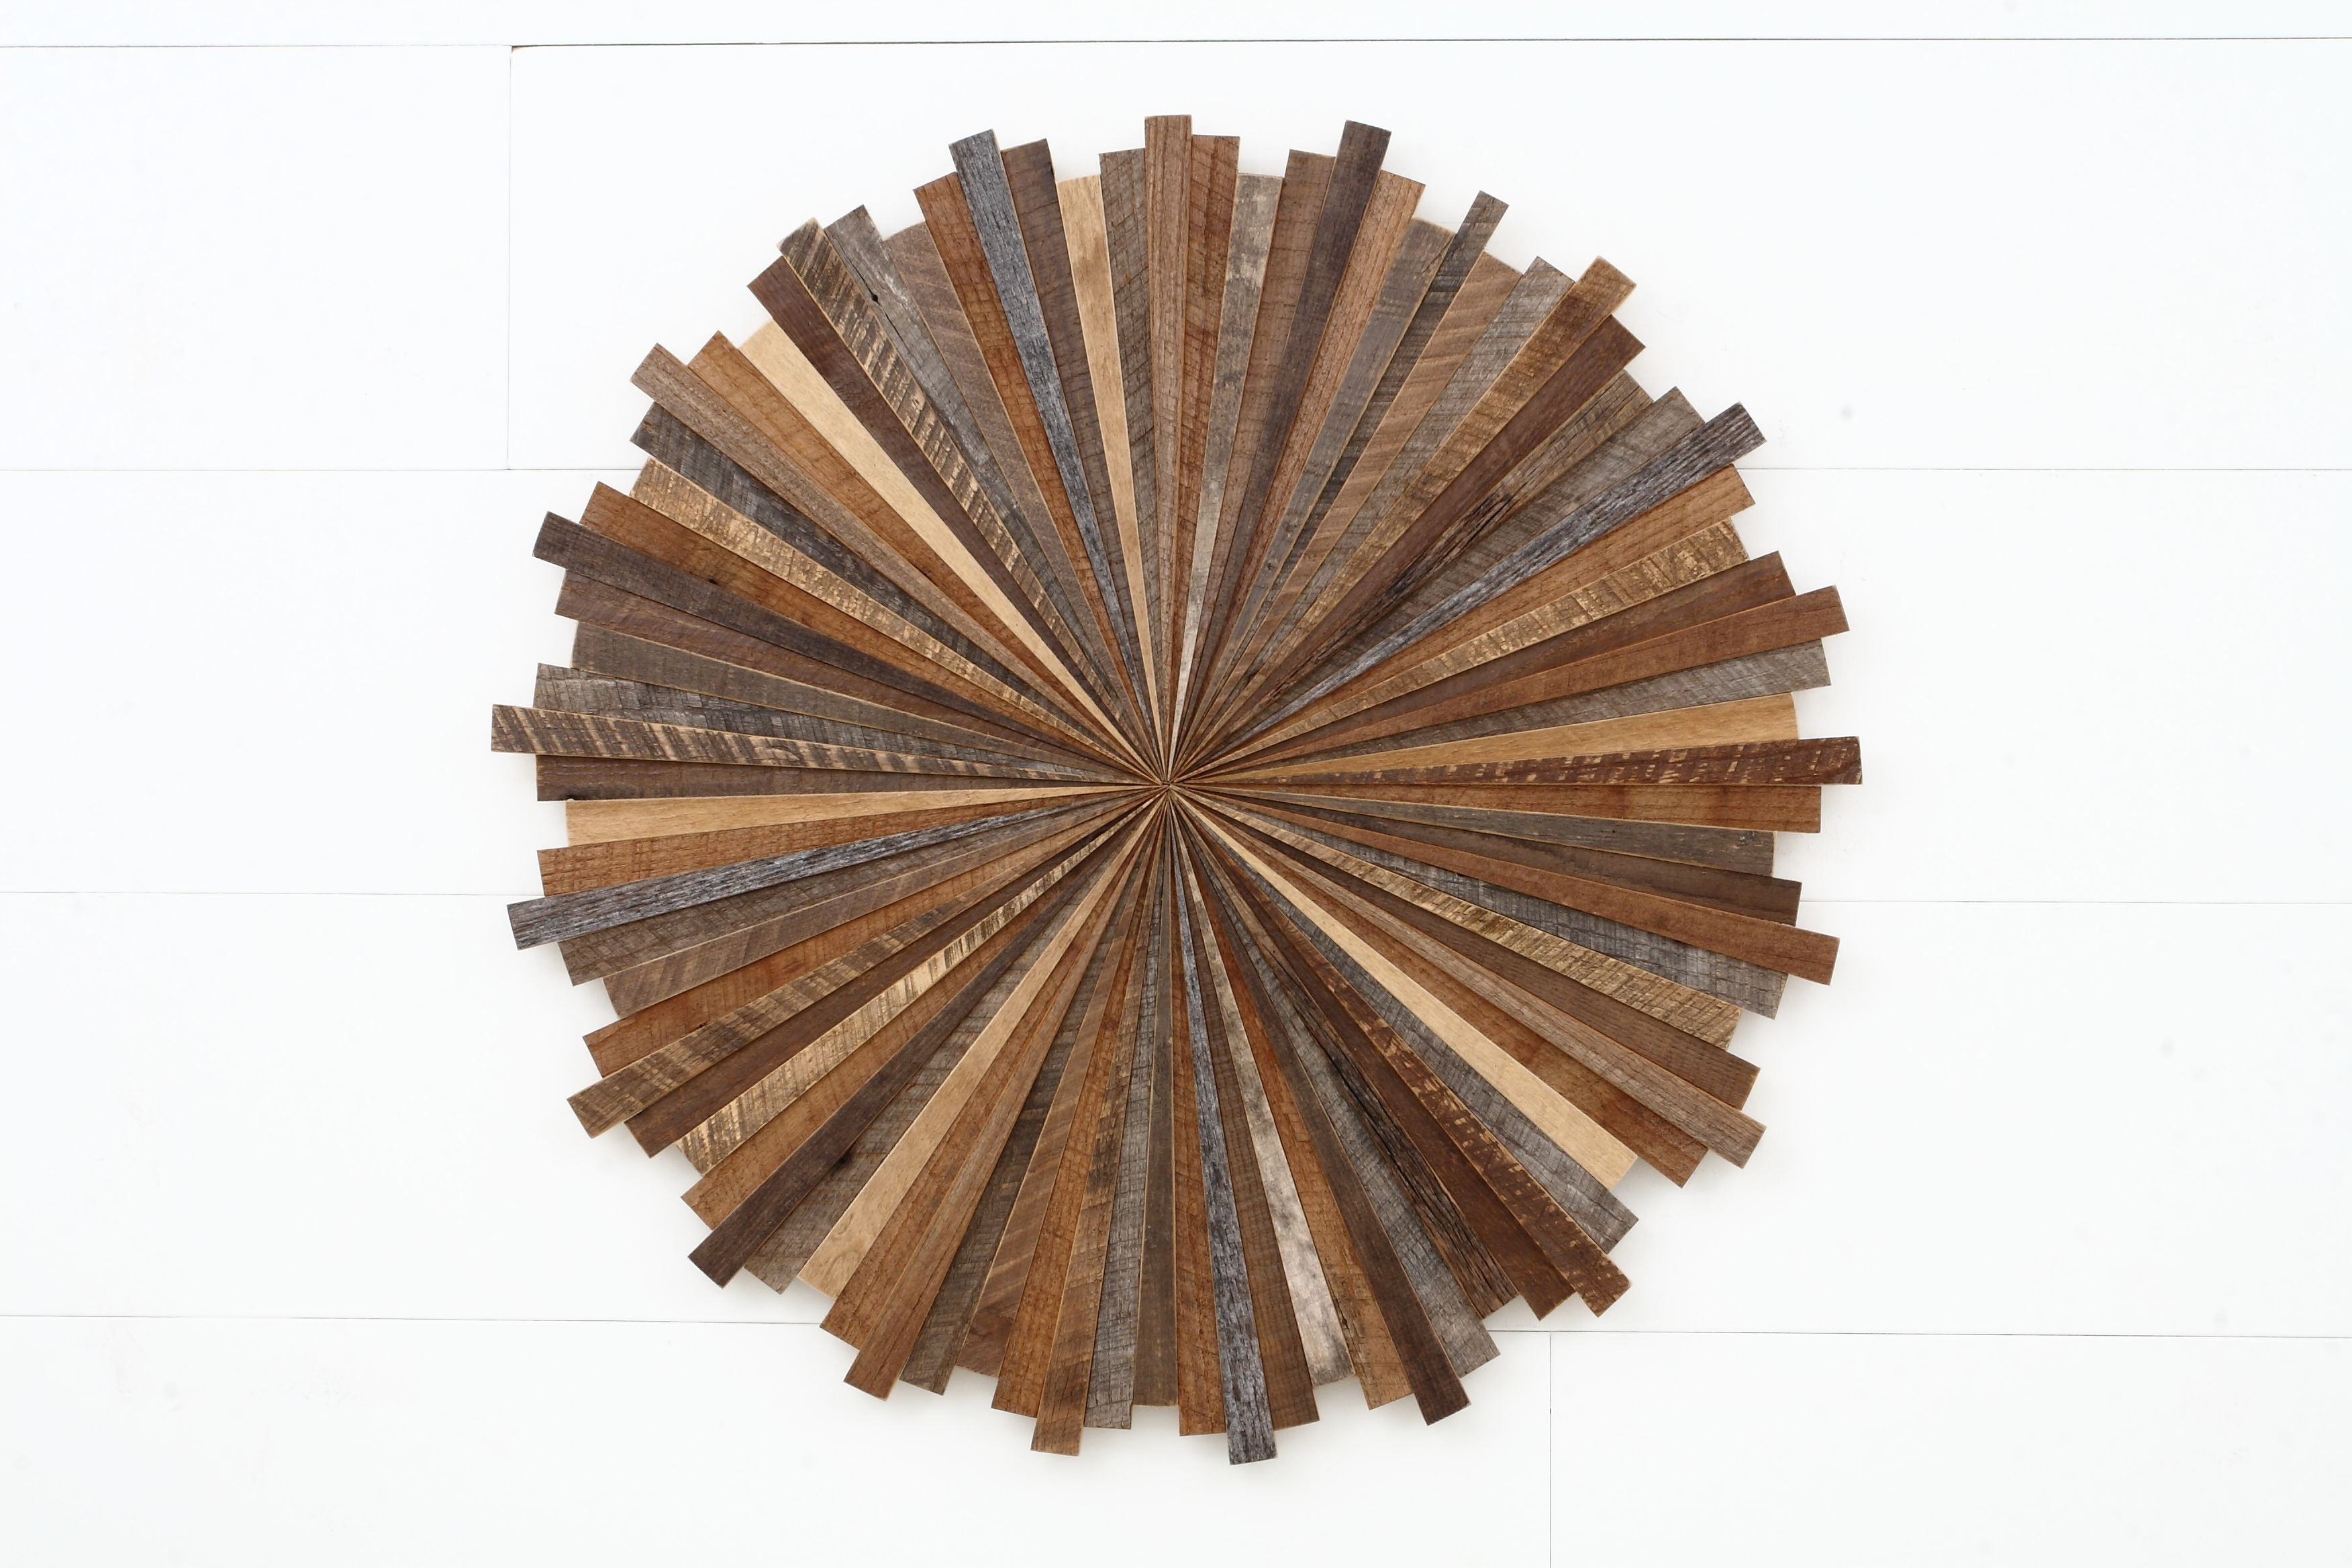 Hand Crafted Starburst Wood Wall Art, Made With Old Reclaimed For Starburst Wall Art (View 6 of 20)